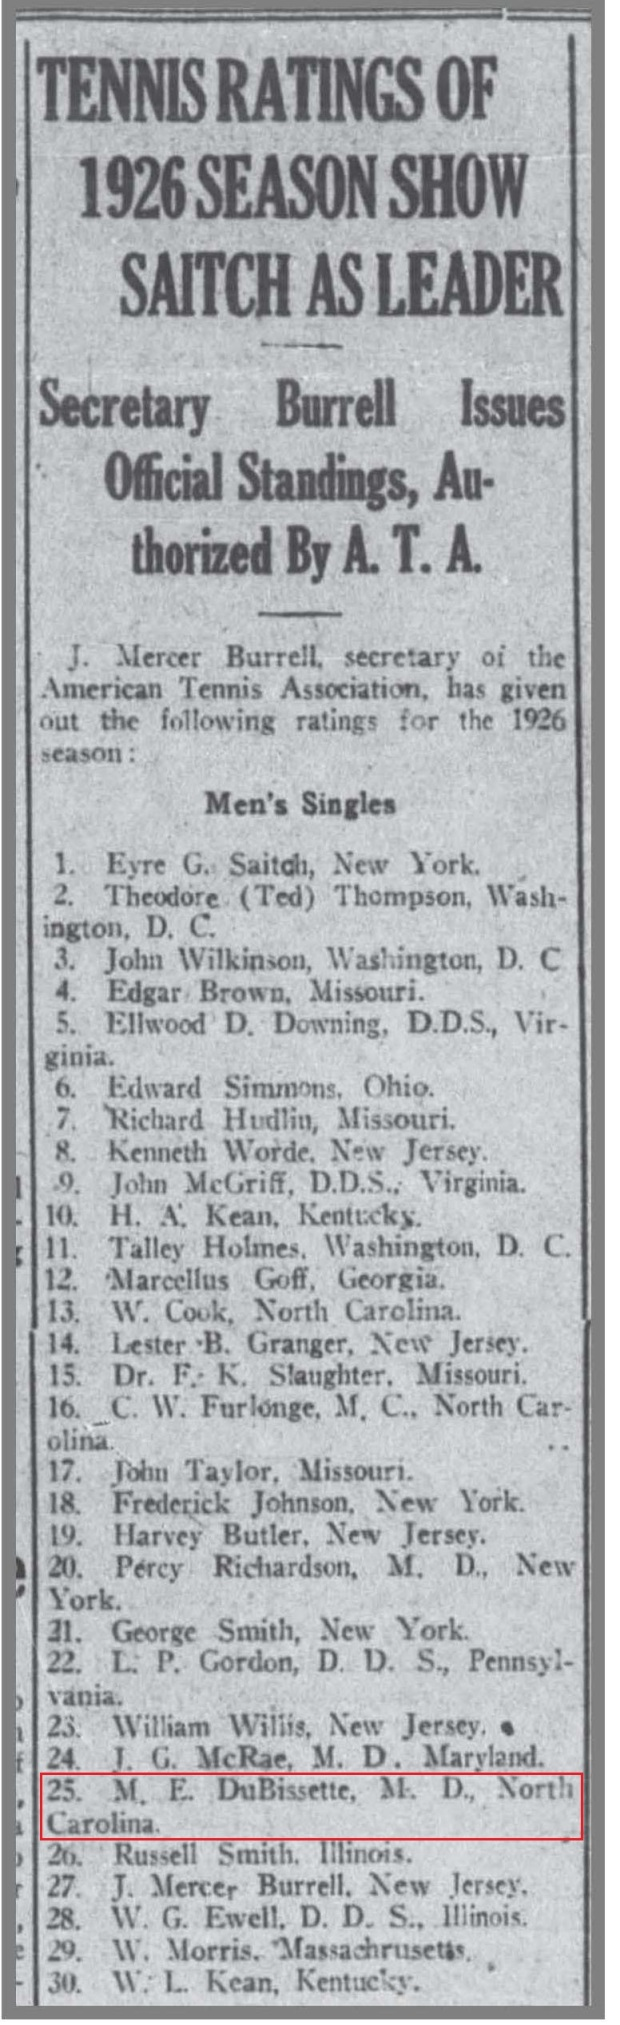 NY_Age_2_12_1927_Dubissette_tennis_rankings